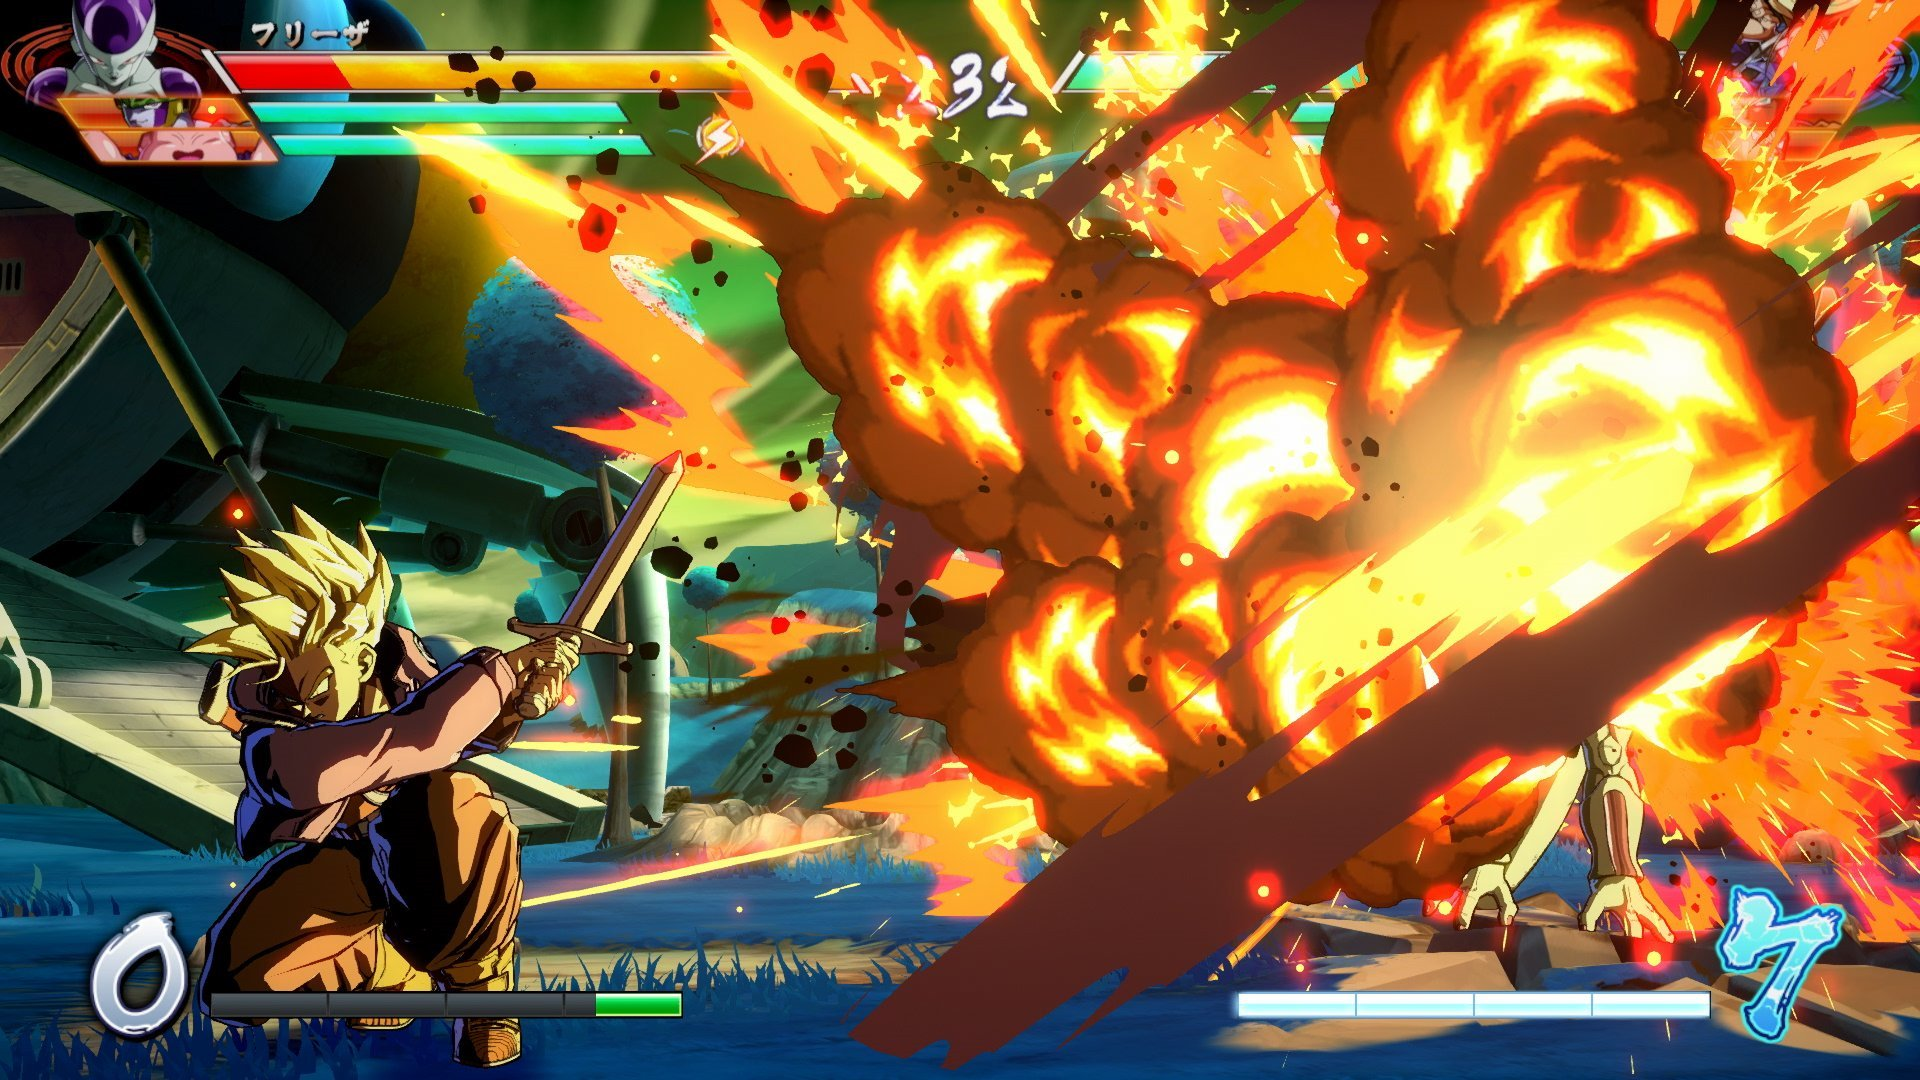 Dragon Ball FighterZ is getting a beta, check out Trunks in the meantime screenshot